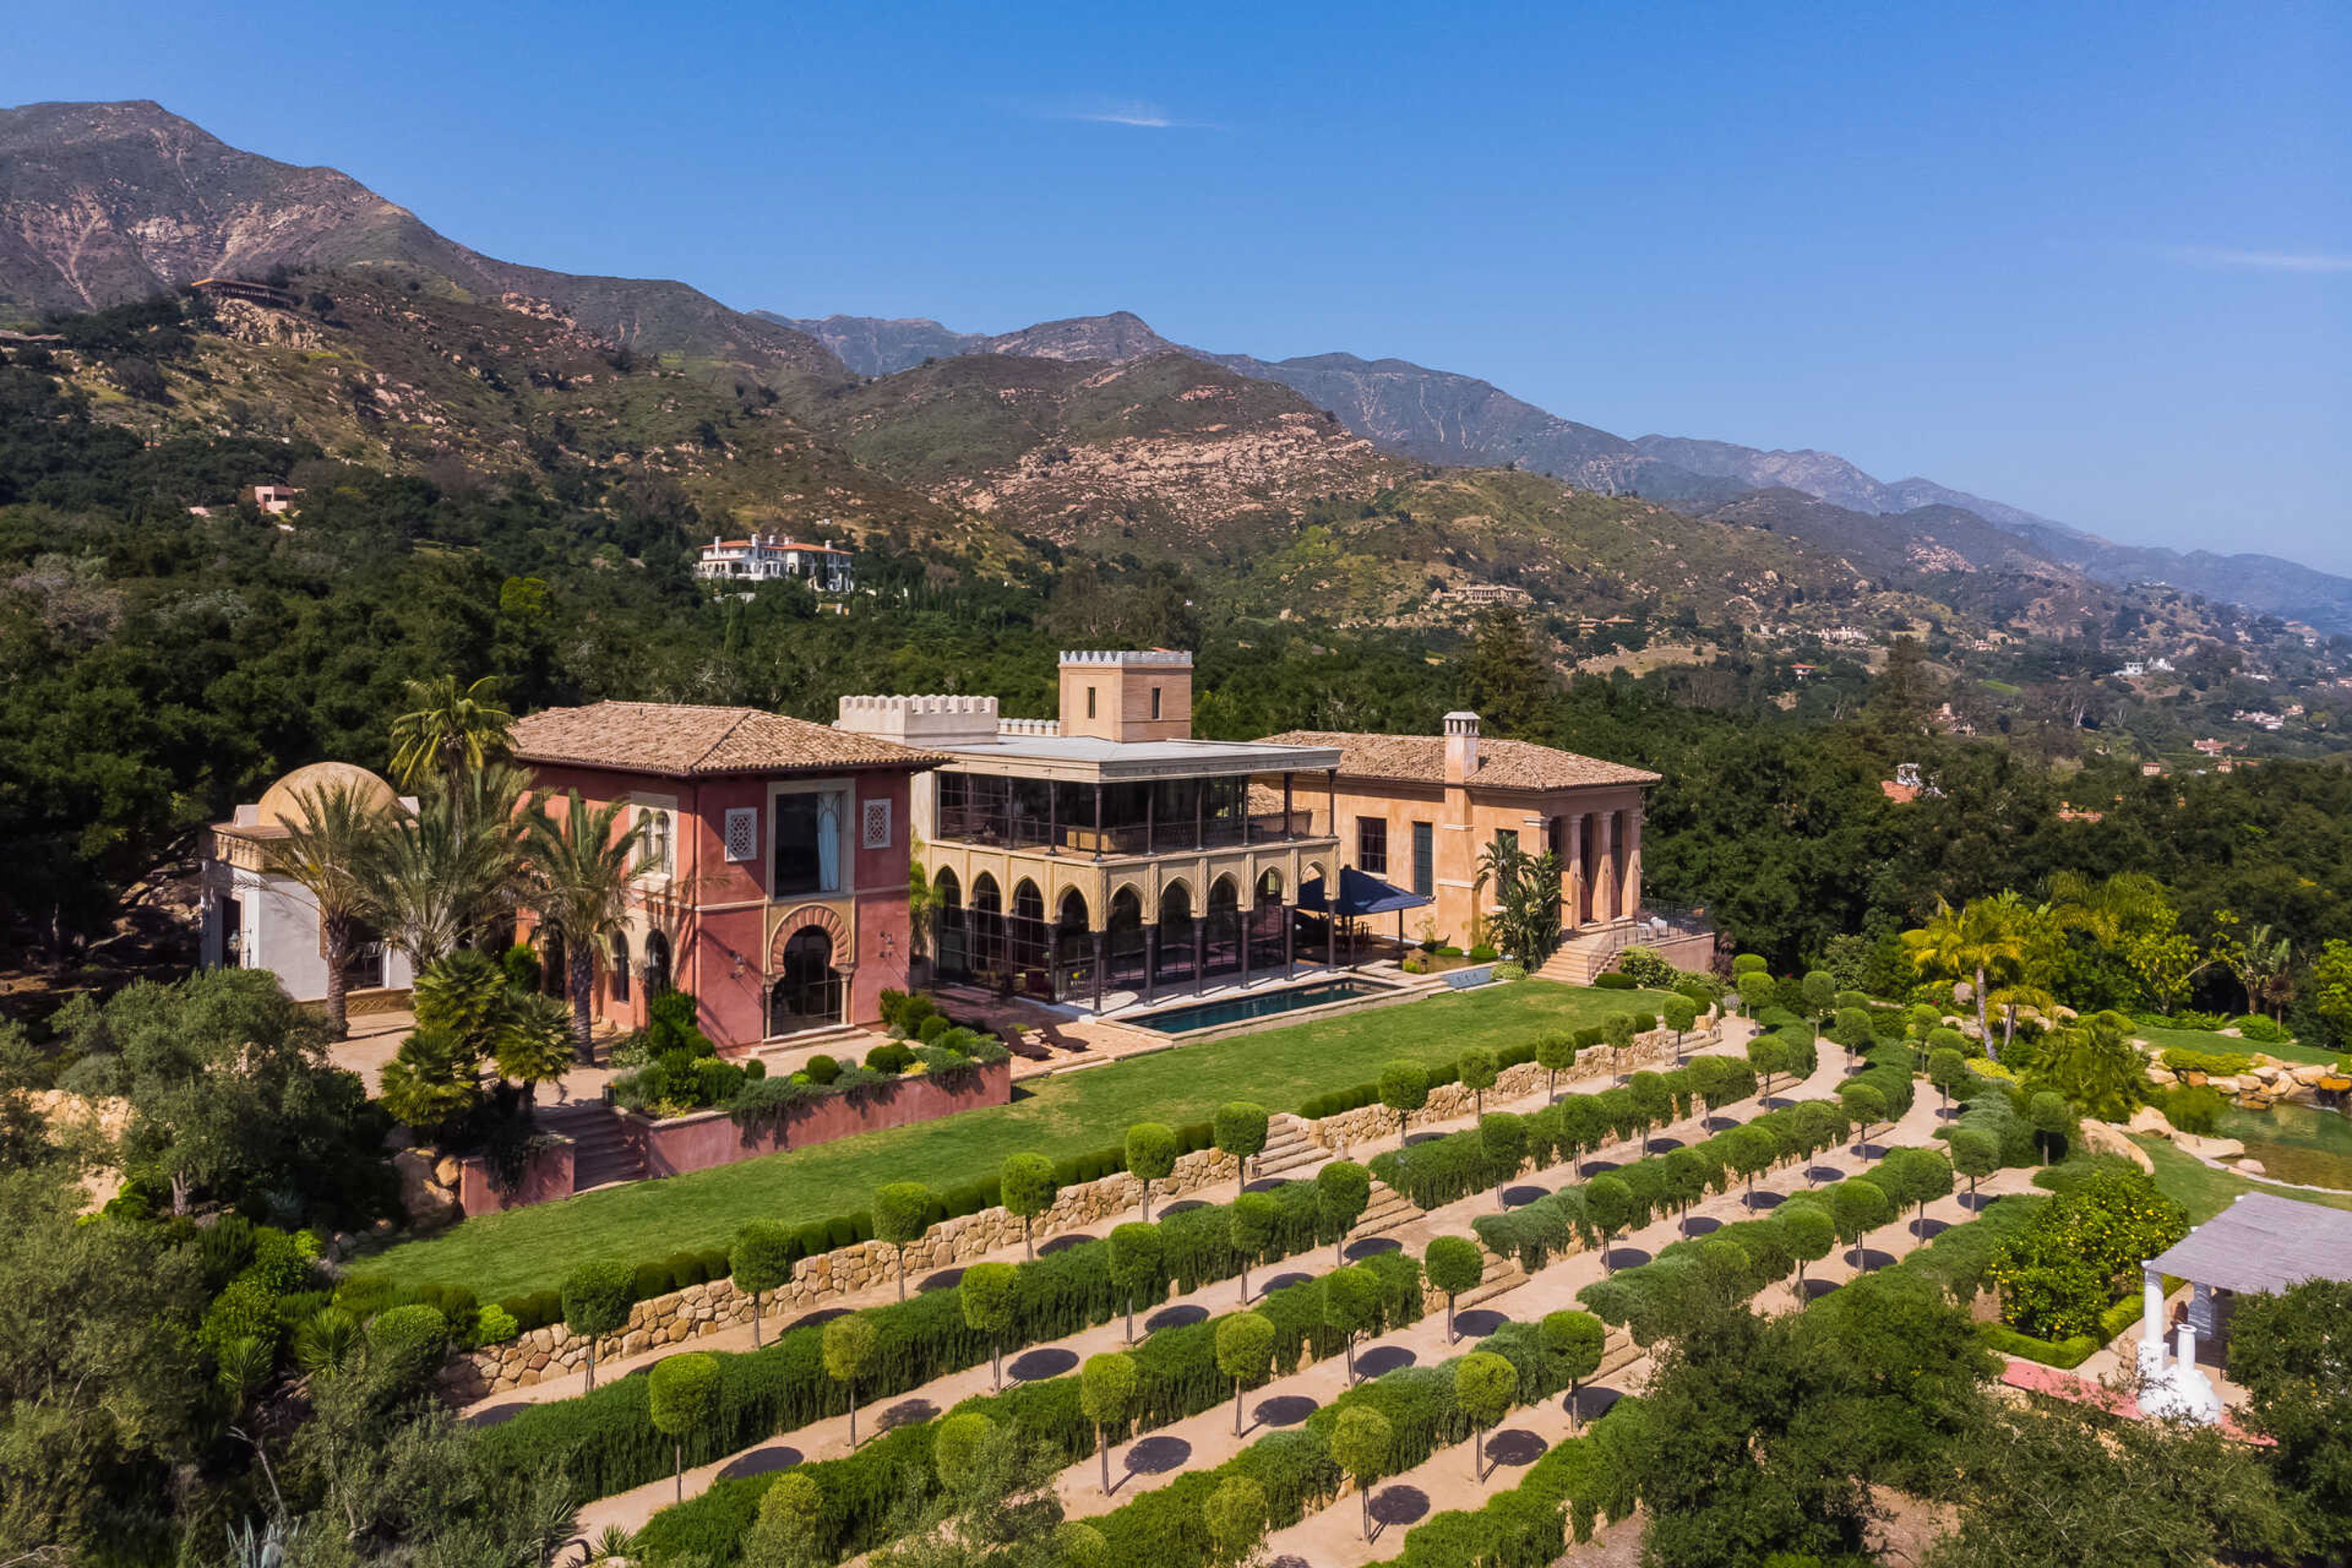 %%title%% this incredible $35m home merges Old World design and architecture with New World conveniences